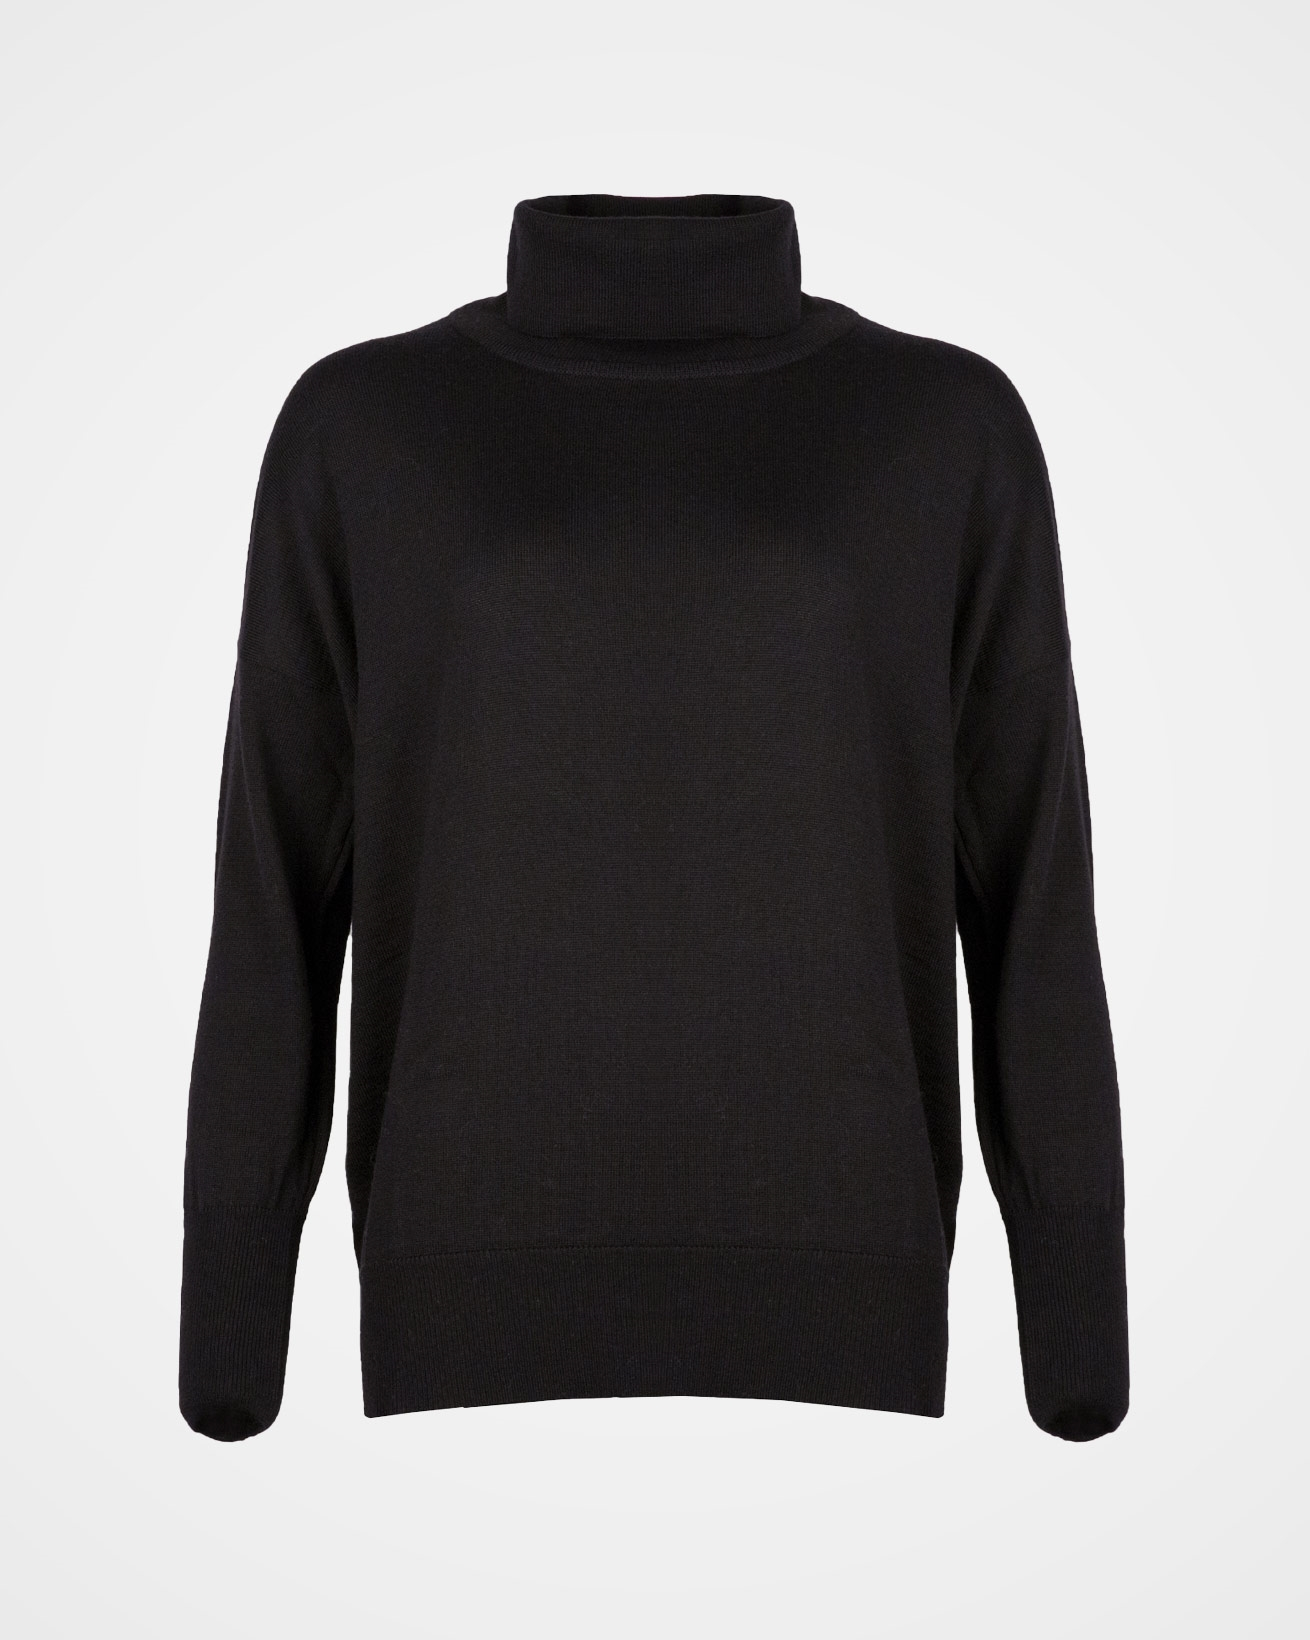 7401_slouchy-fine-knit-roll-neck_black_front.jpg